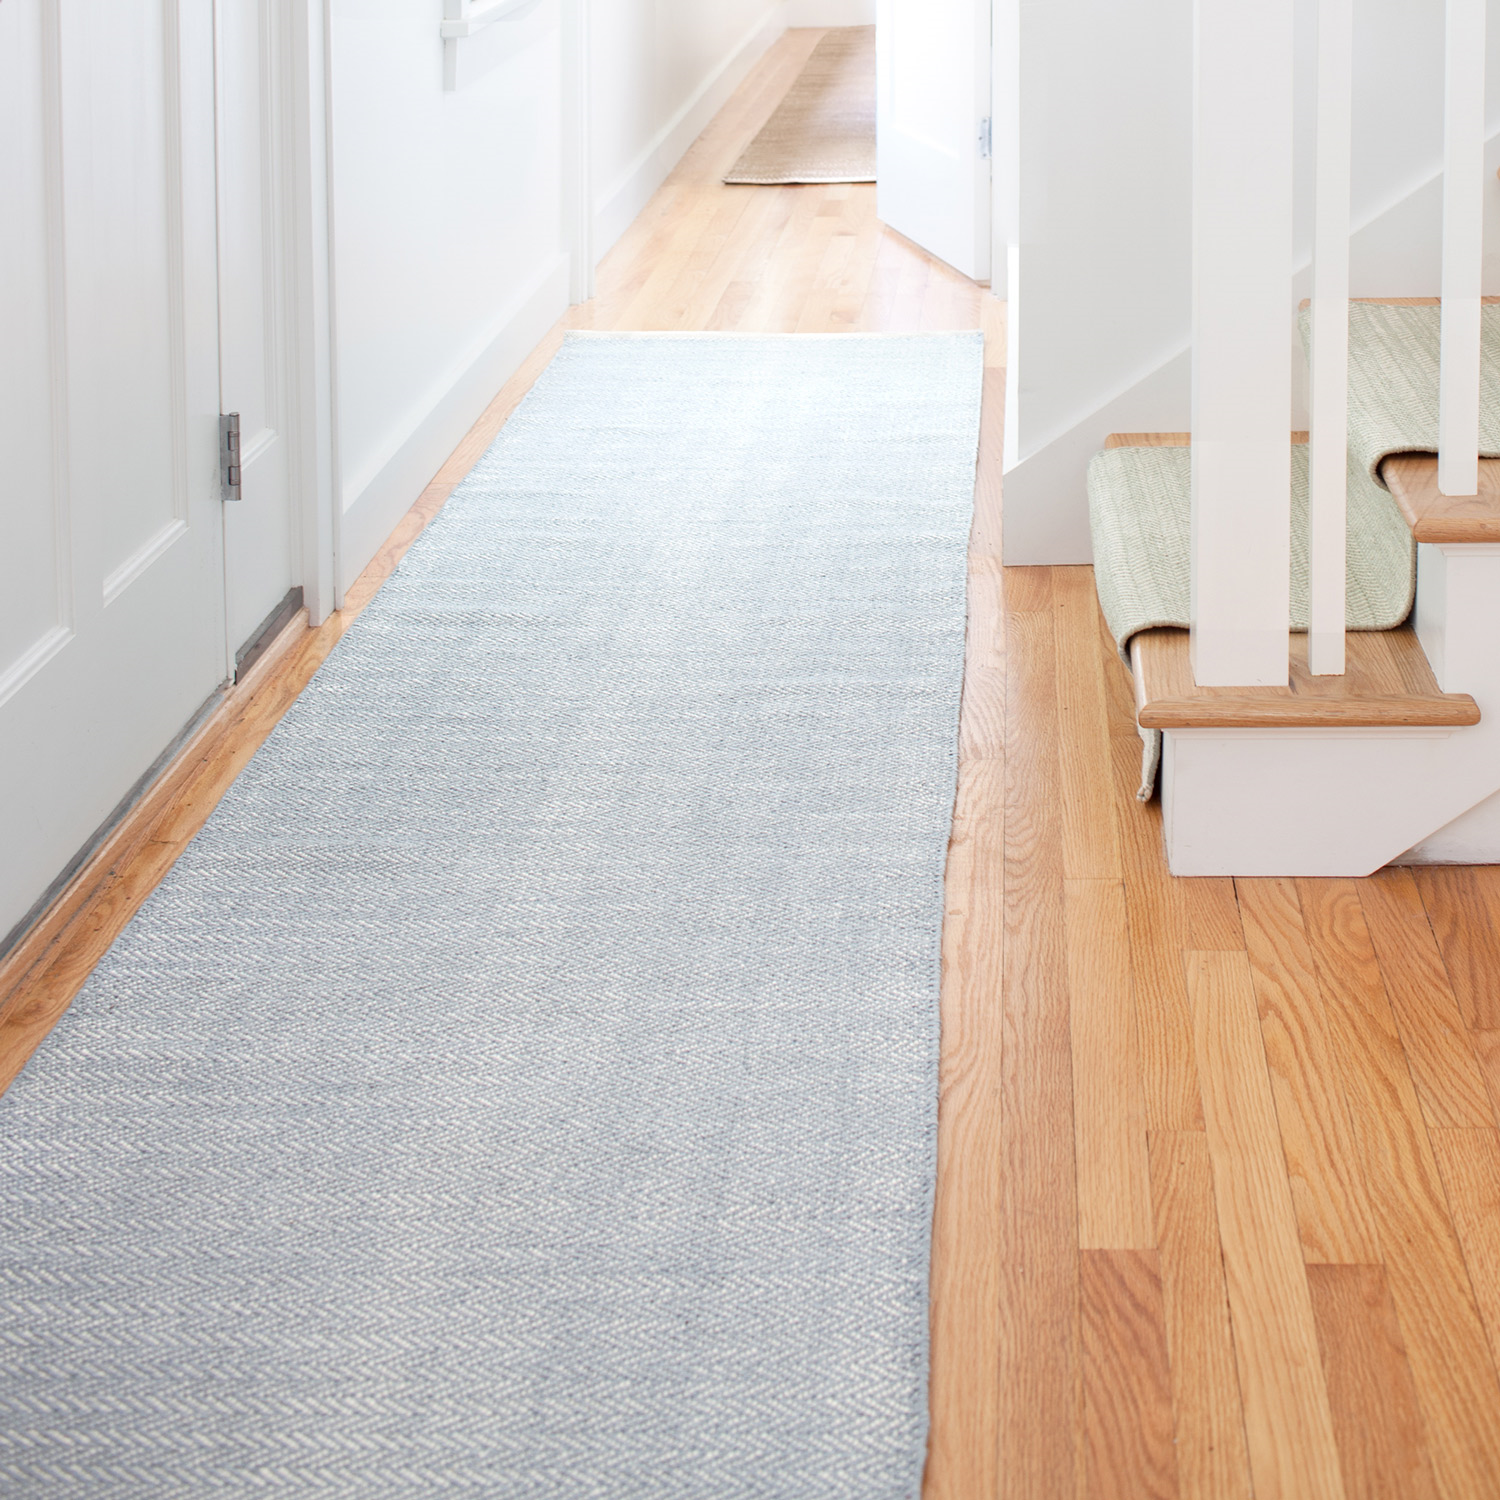 Captivating dash and albert runner at home stairways combinet with laminate floor stairs